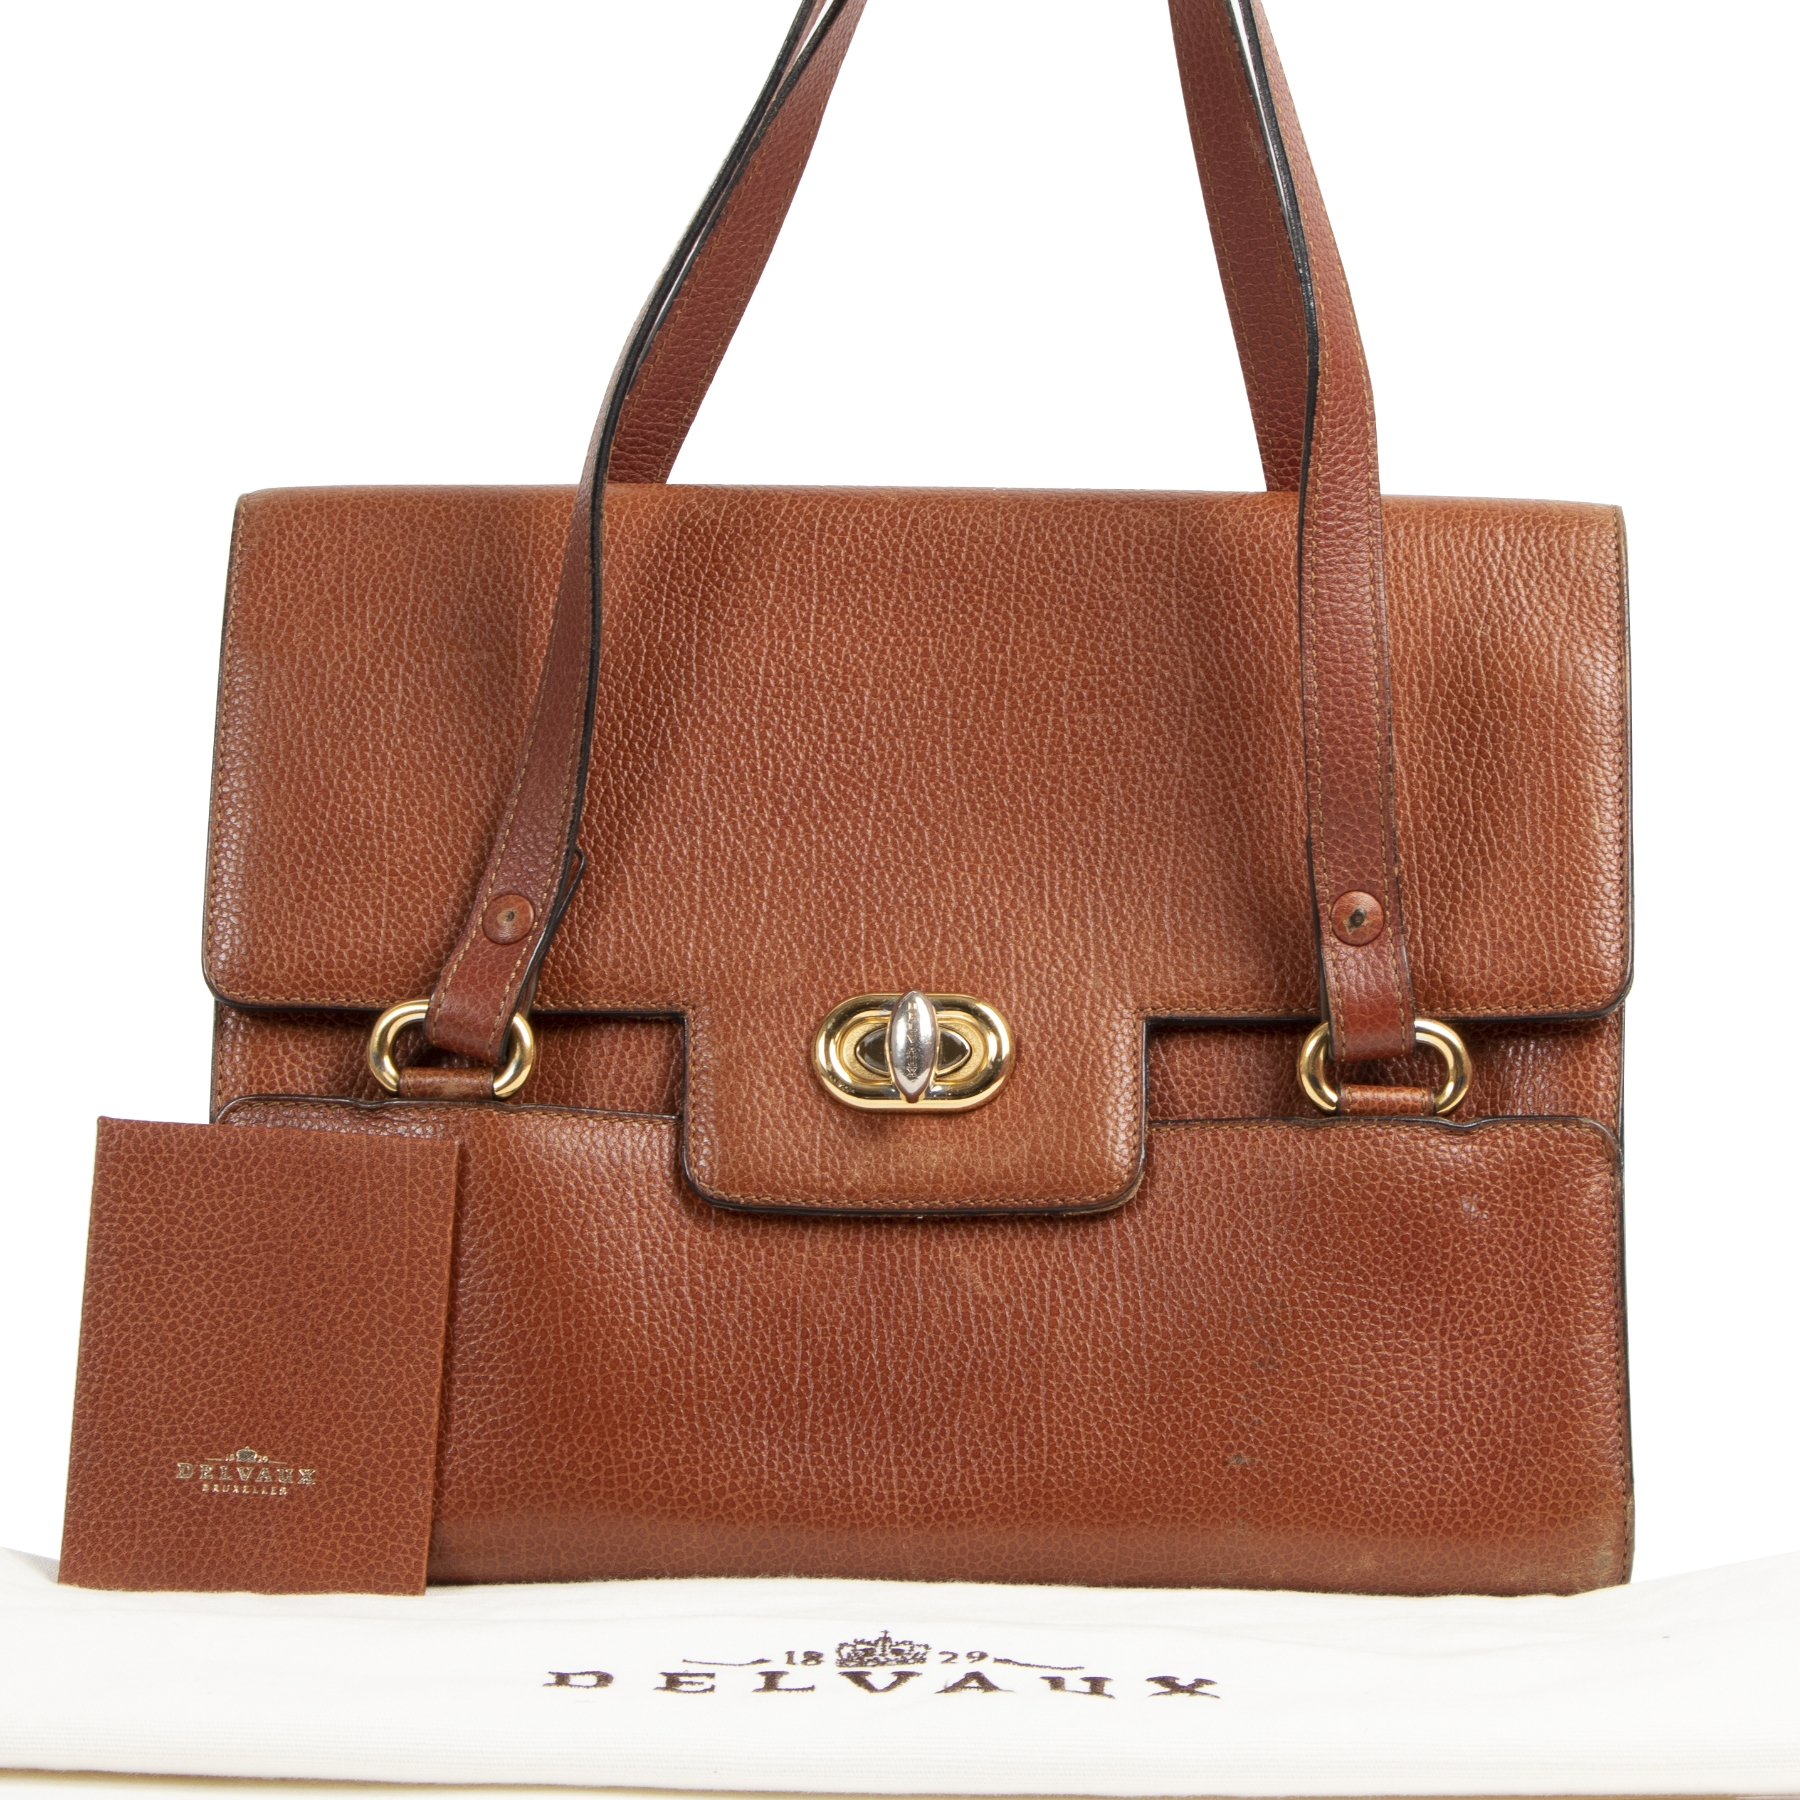 Delvaux Brown Shoulder Bag. Authentieke tweedehands Delvaux handtassen bij LabelLOV Antwerpen. Authentique seconde-main luxury en ligne webshop LabelLOV. Authentic preloved Delvaux handbags at LabelLOV Antwerp.